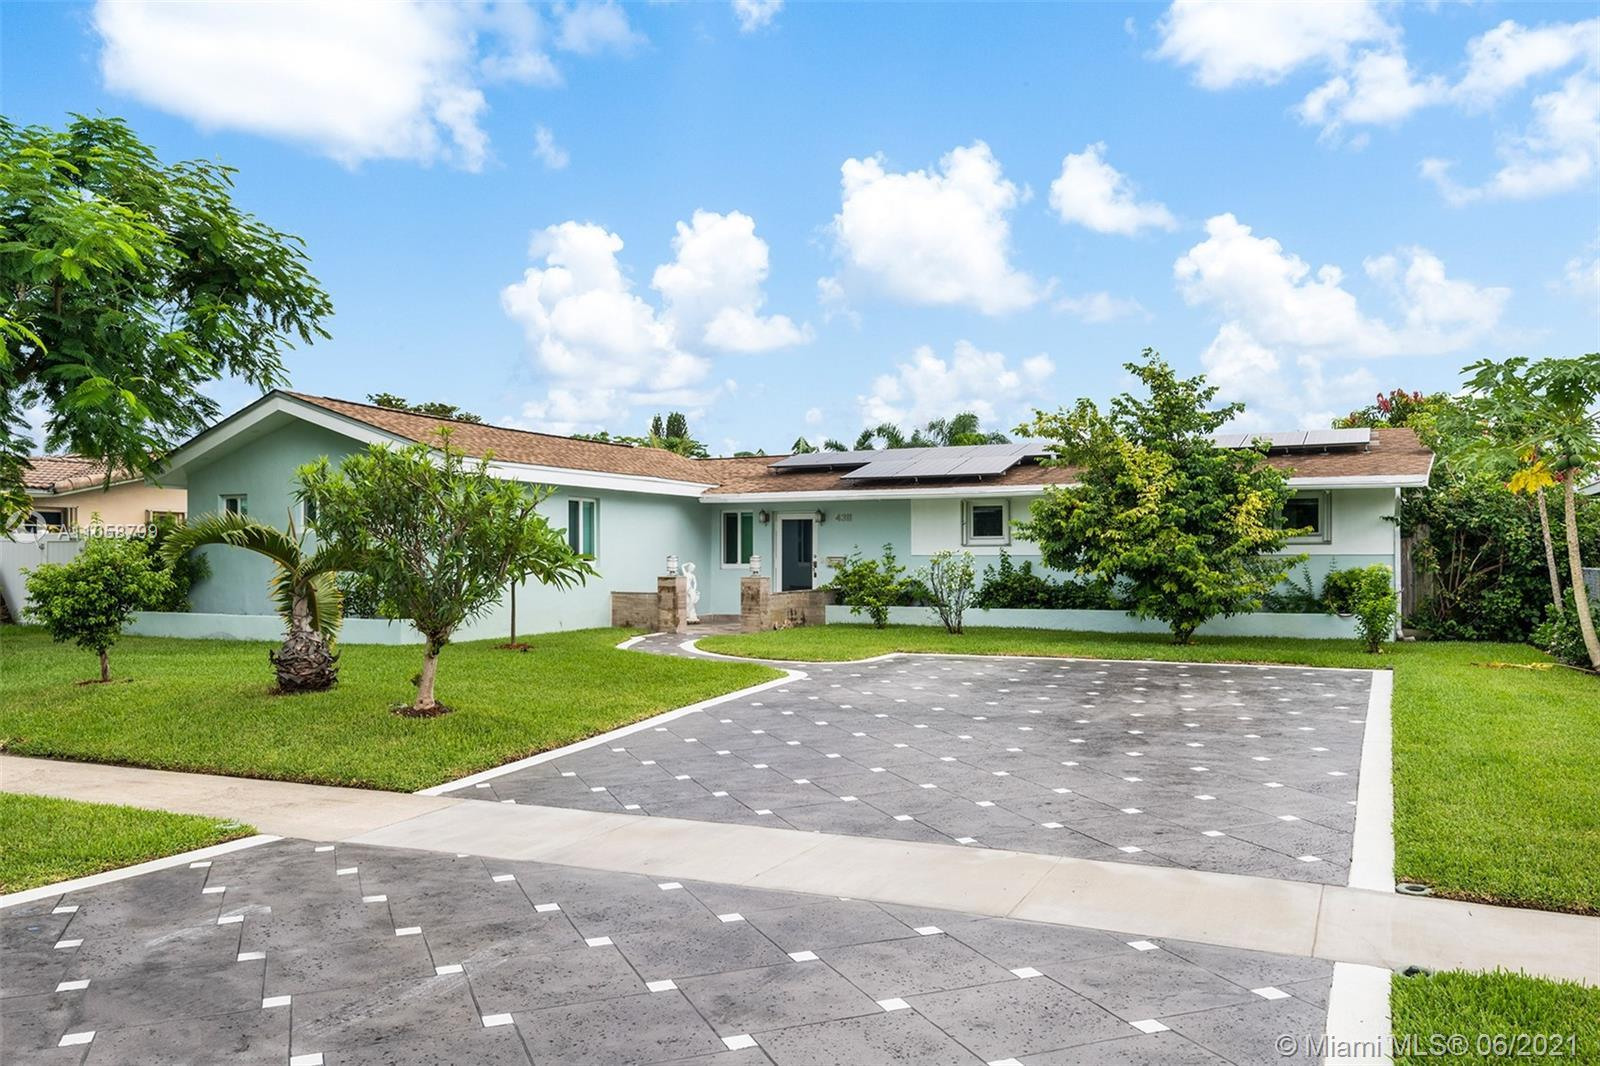 Pristine move in ready 3 BR 3 BA house in Hollywood Hills! This home features a master bedroom AND h